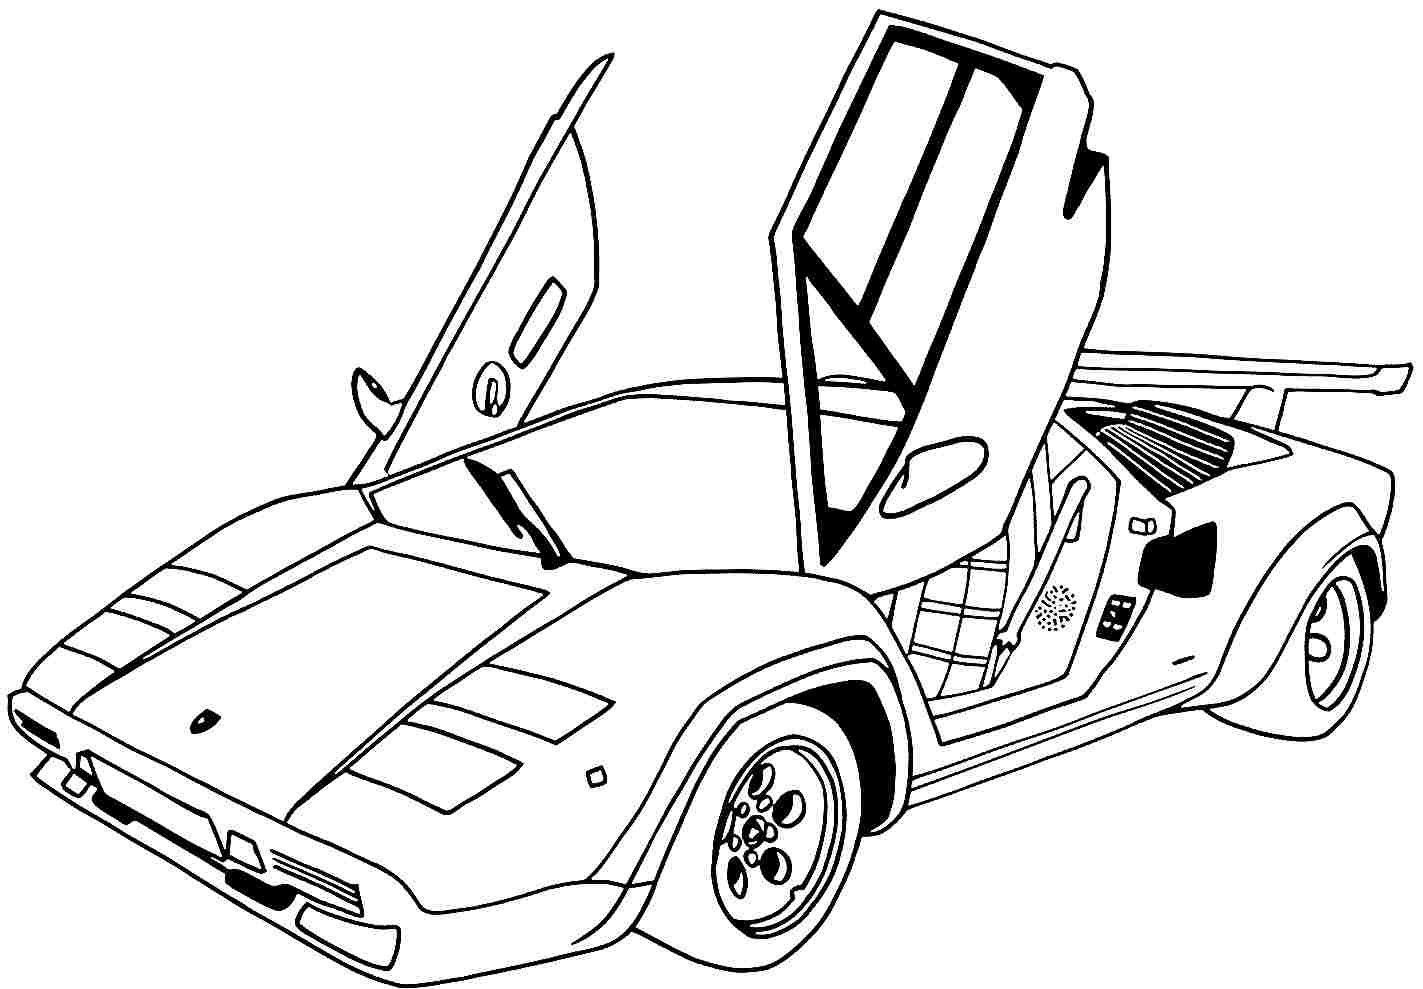 Printable coloring pages of sports cars coloring home for Free cars coloring pages to print